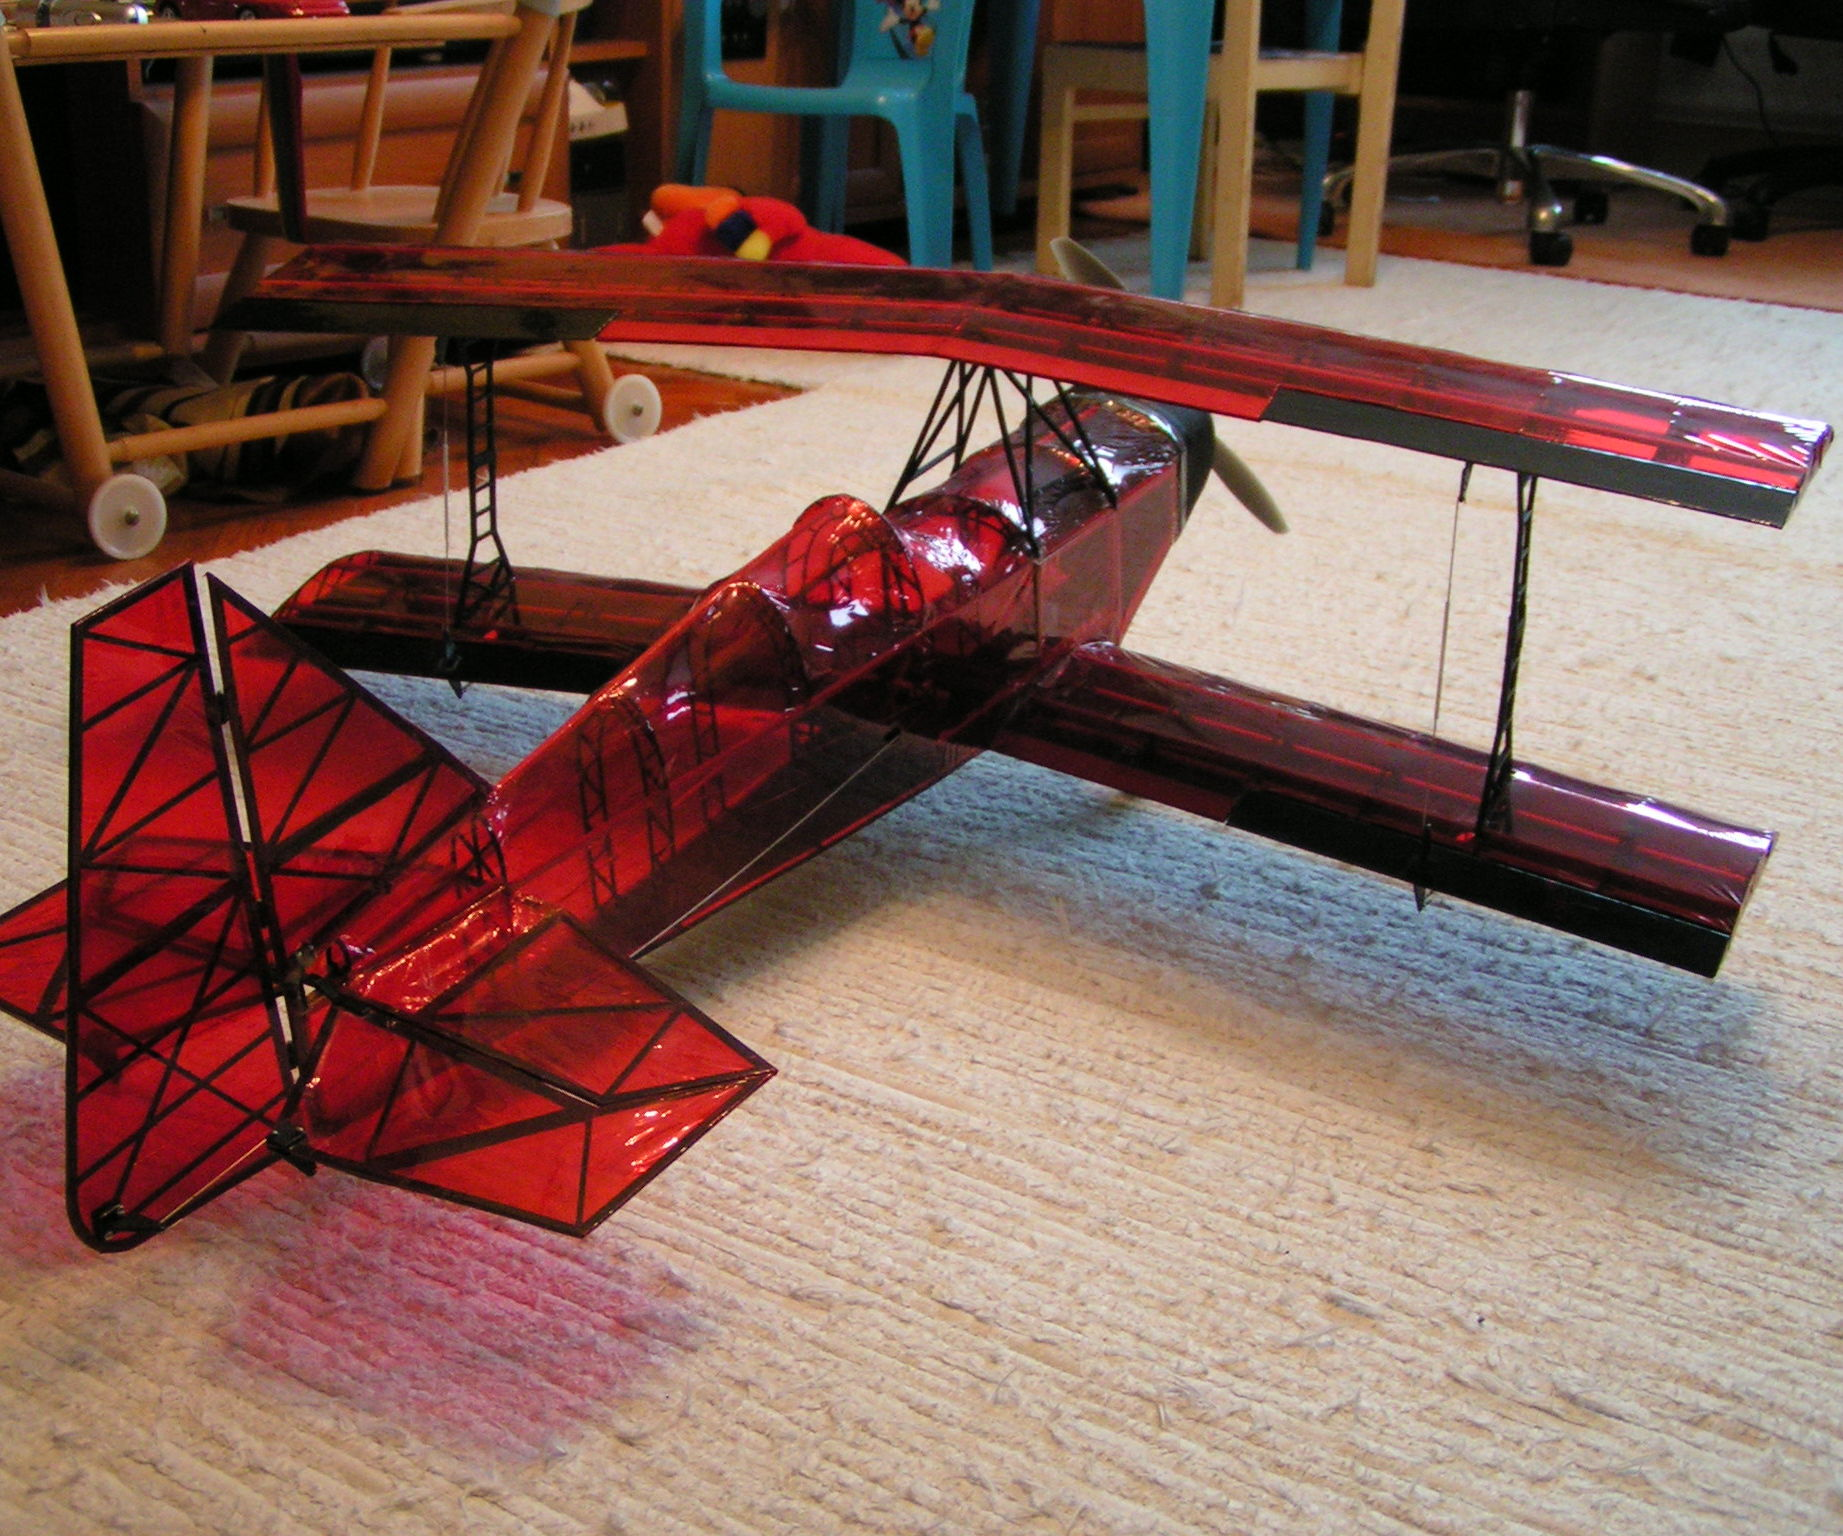 3D printed ultimate biplane 10-300S